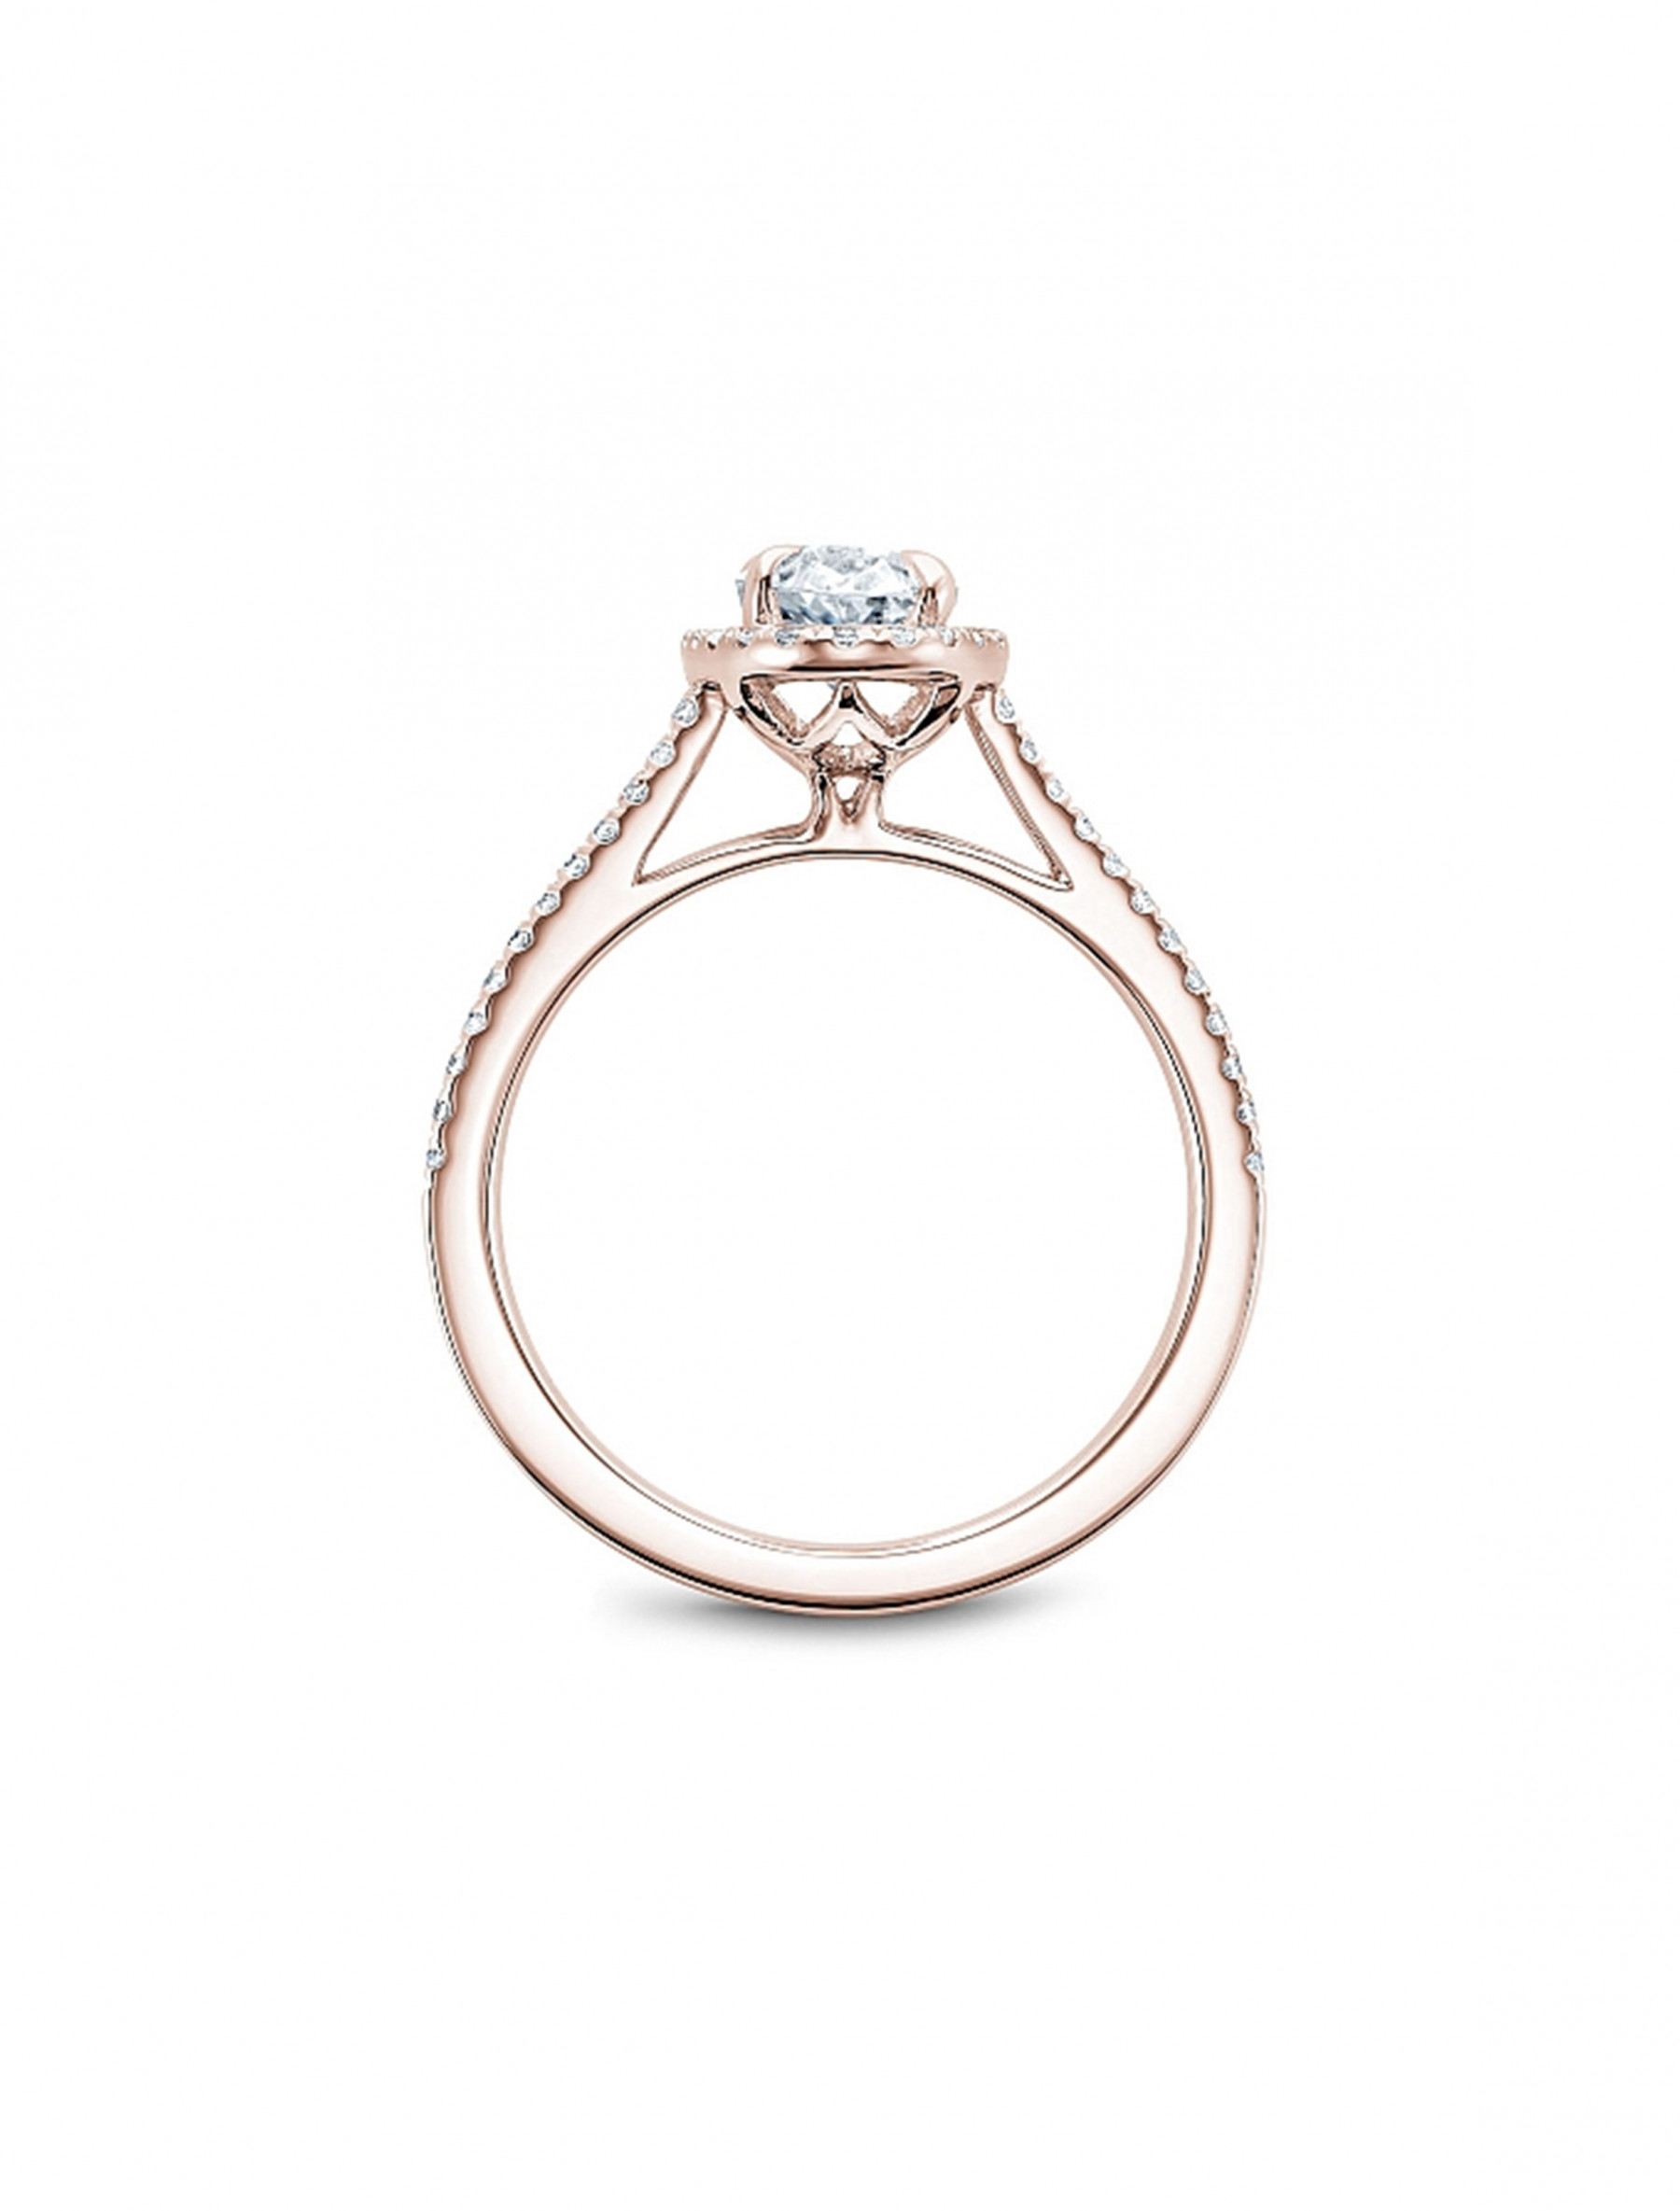 Noam Carver 14K Rose Gold Oval Pave Diamond Halo Engagement Ring Setting side view